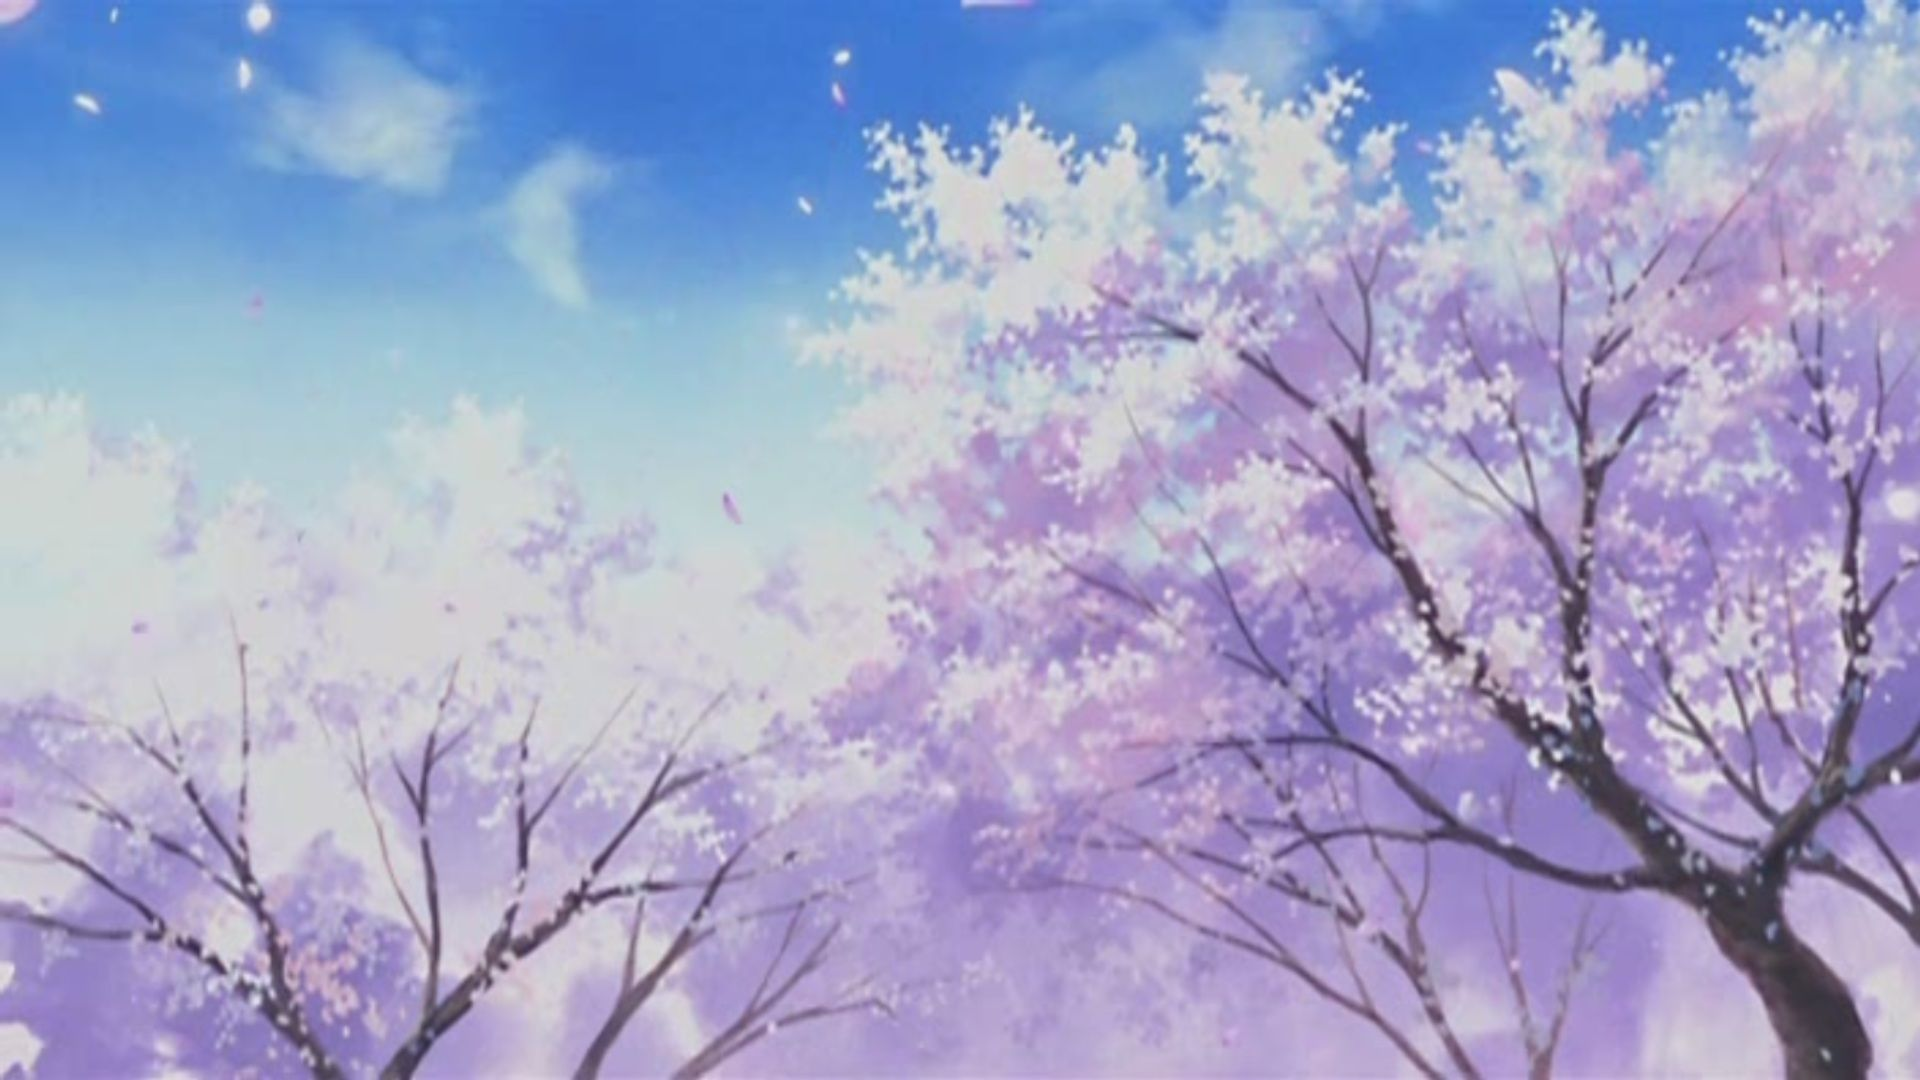 Anime Scenery HD Wallpaper Sugidol Sakura Tree